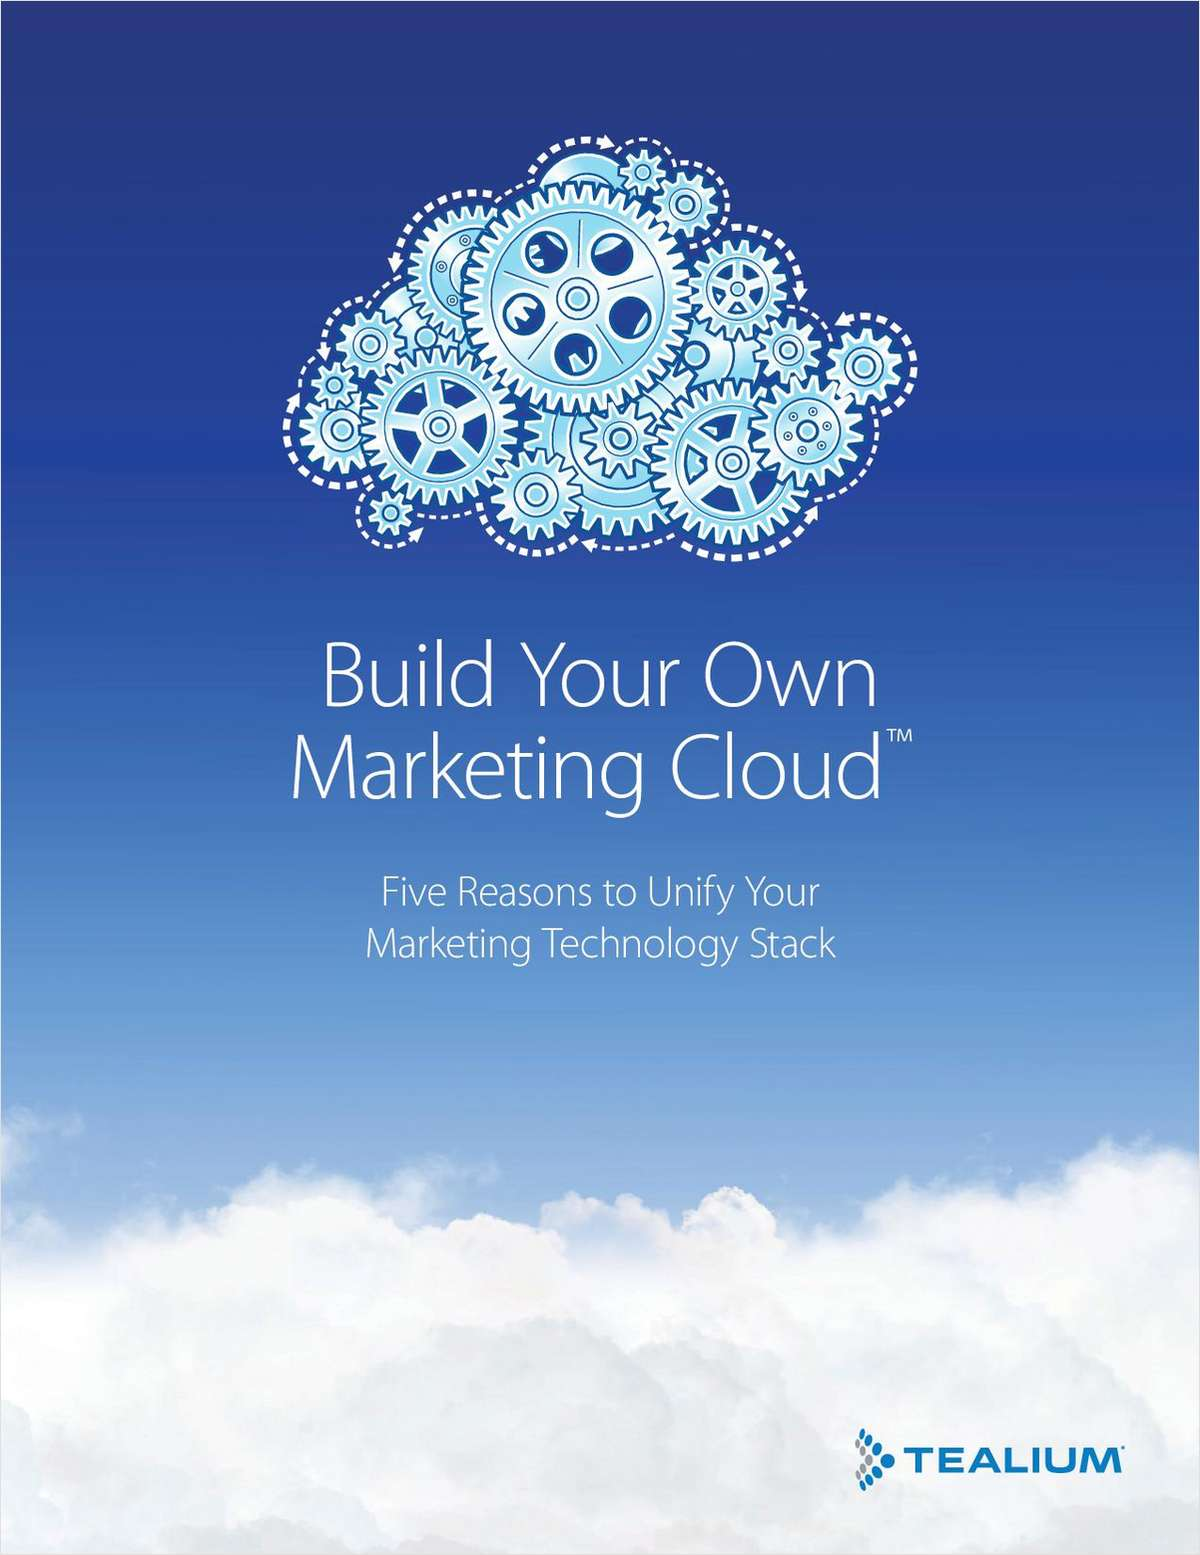 Build Your Own Marketing Cloud™